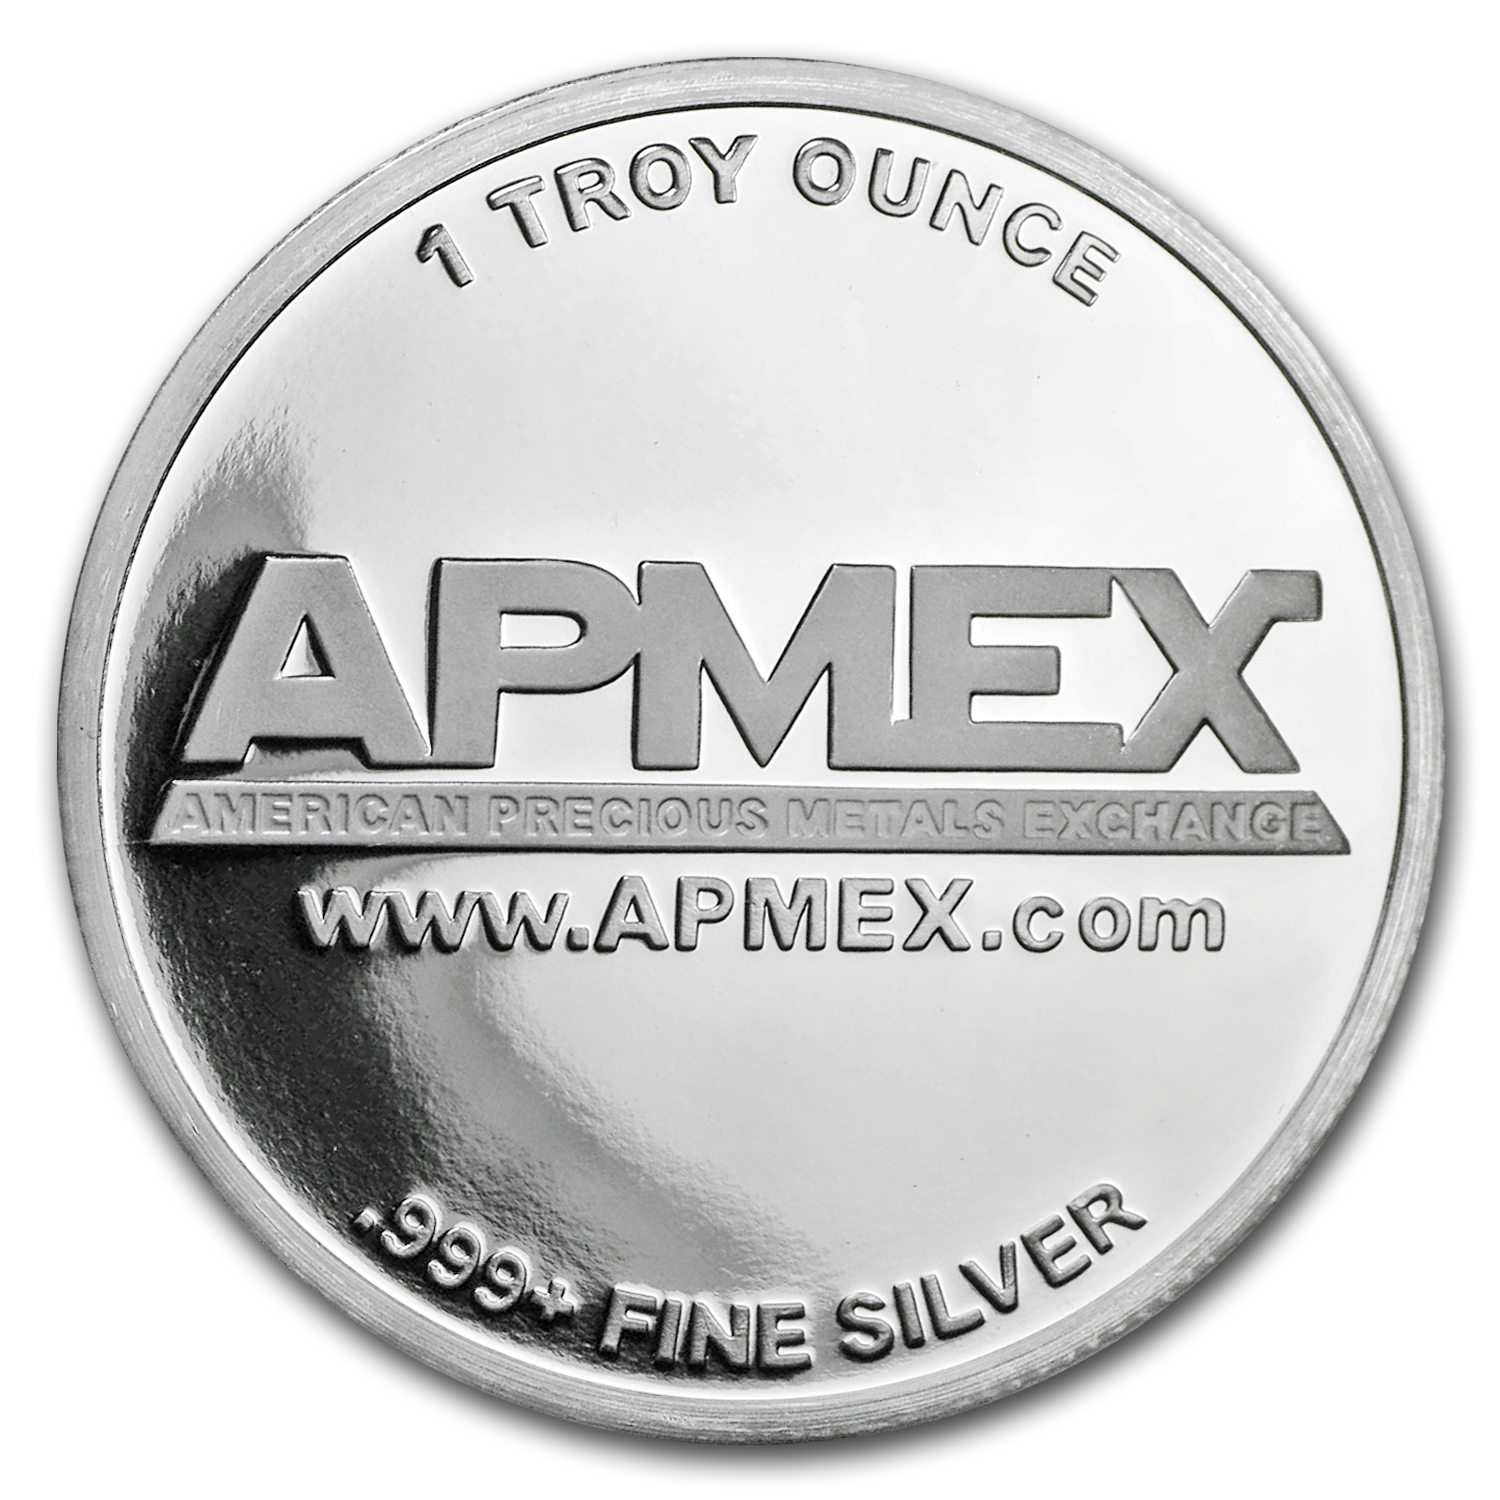 1 oz Silver Colorized Round - APMEX (Thank You - Impact)